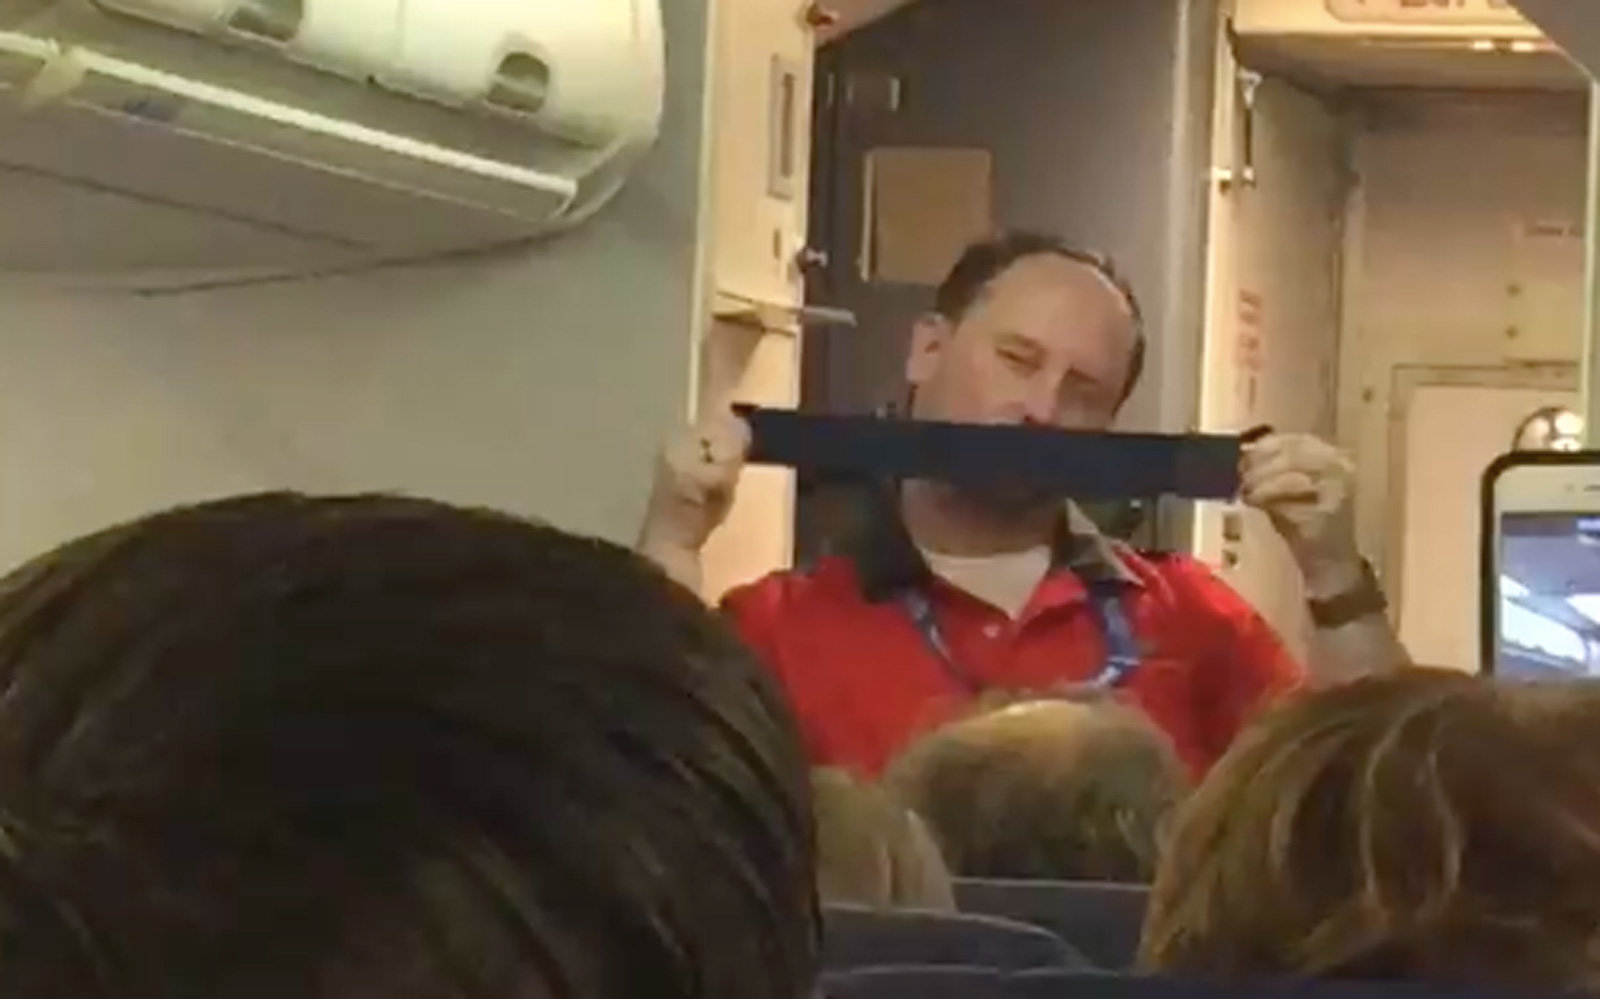 This Flight Attendant's 'Sexy' Safety Demonstration Will Have You Laughing Out Loud